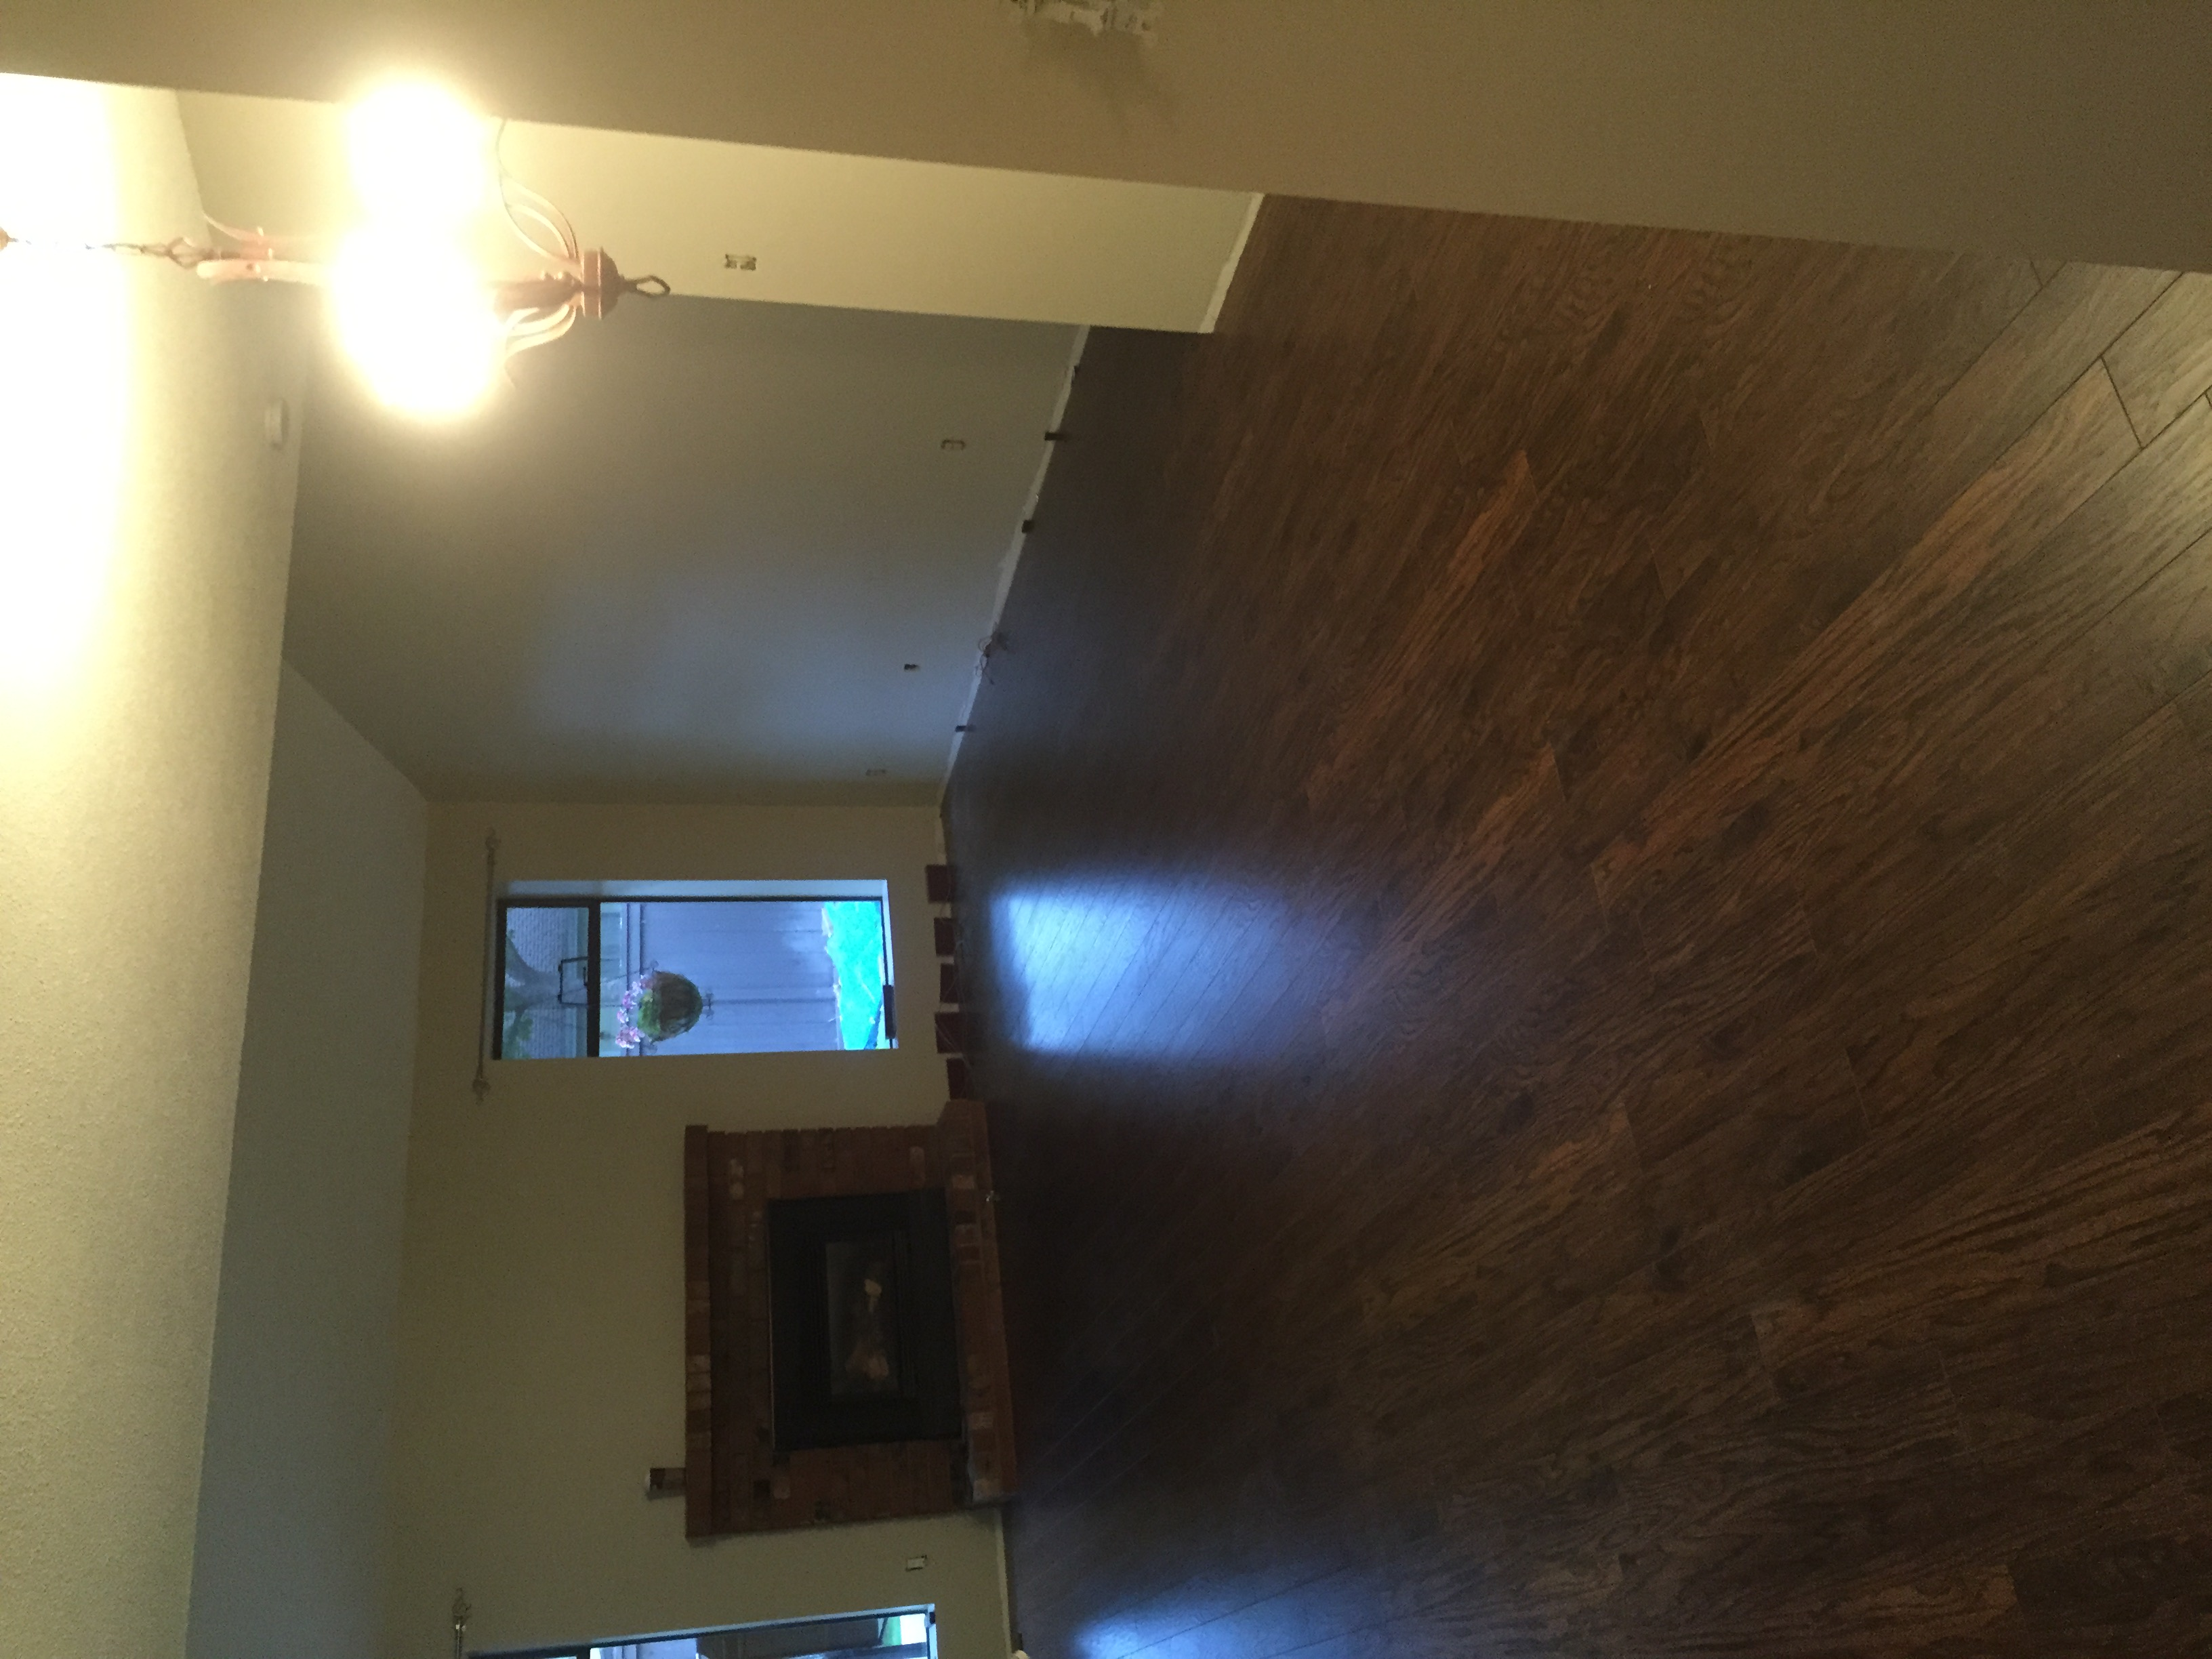 Laminate complete, now Baseboard